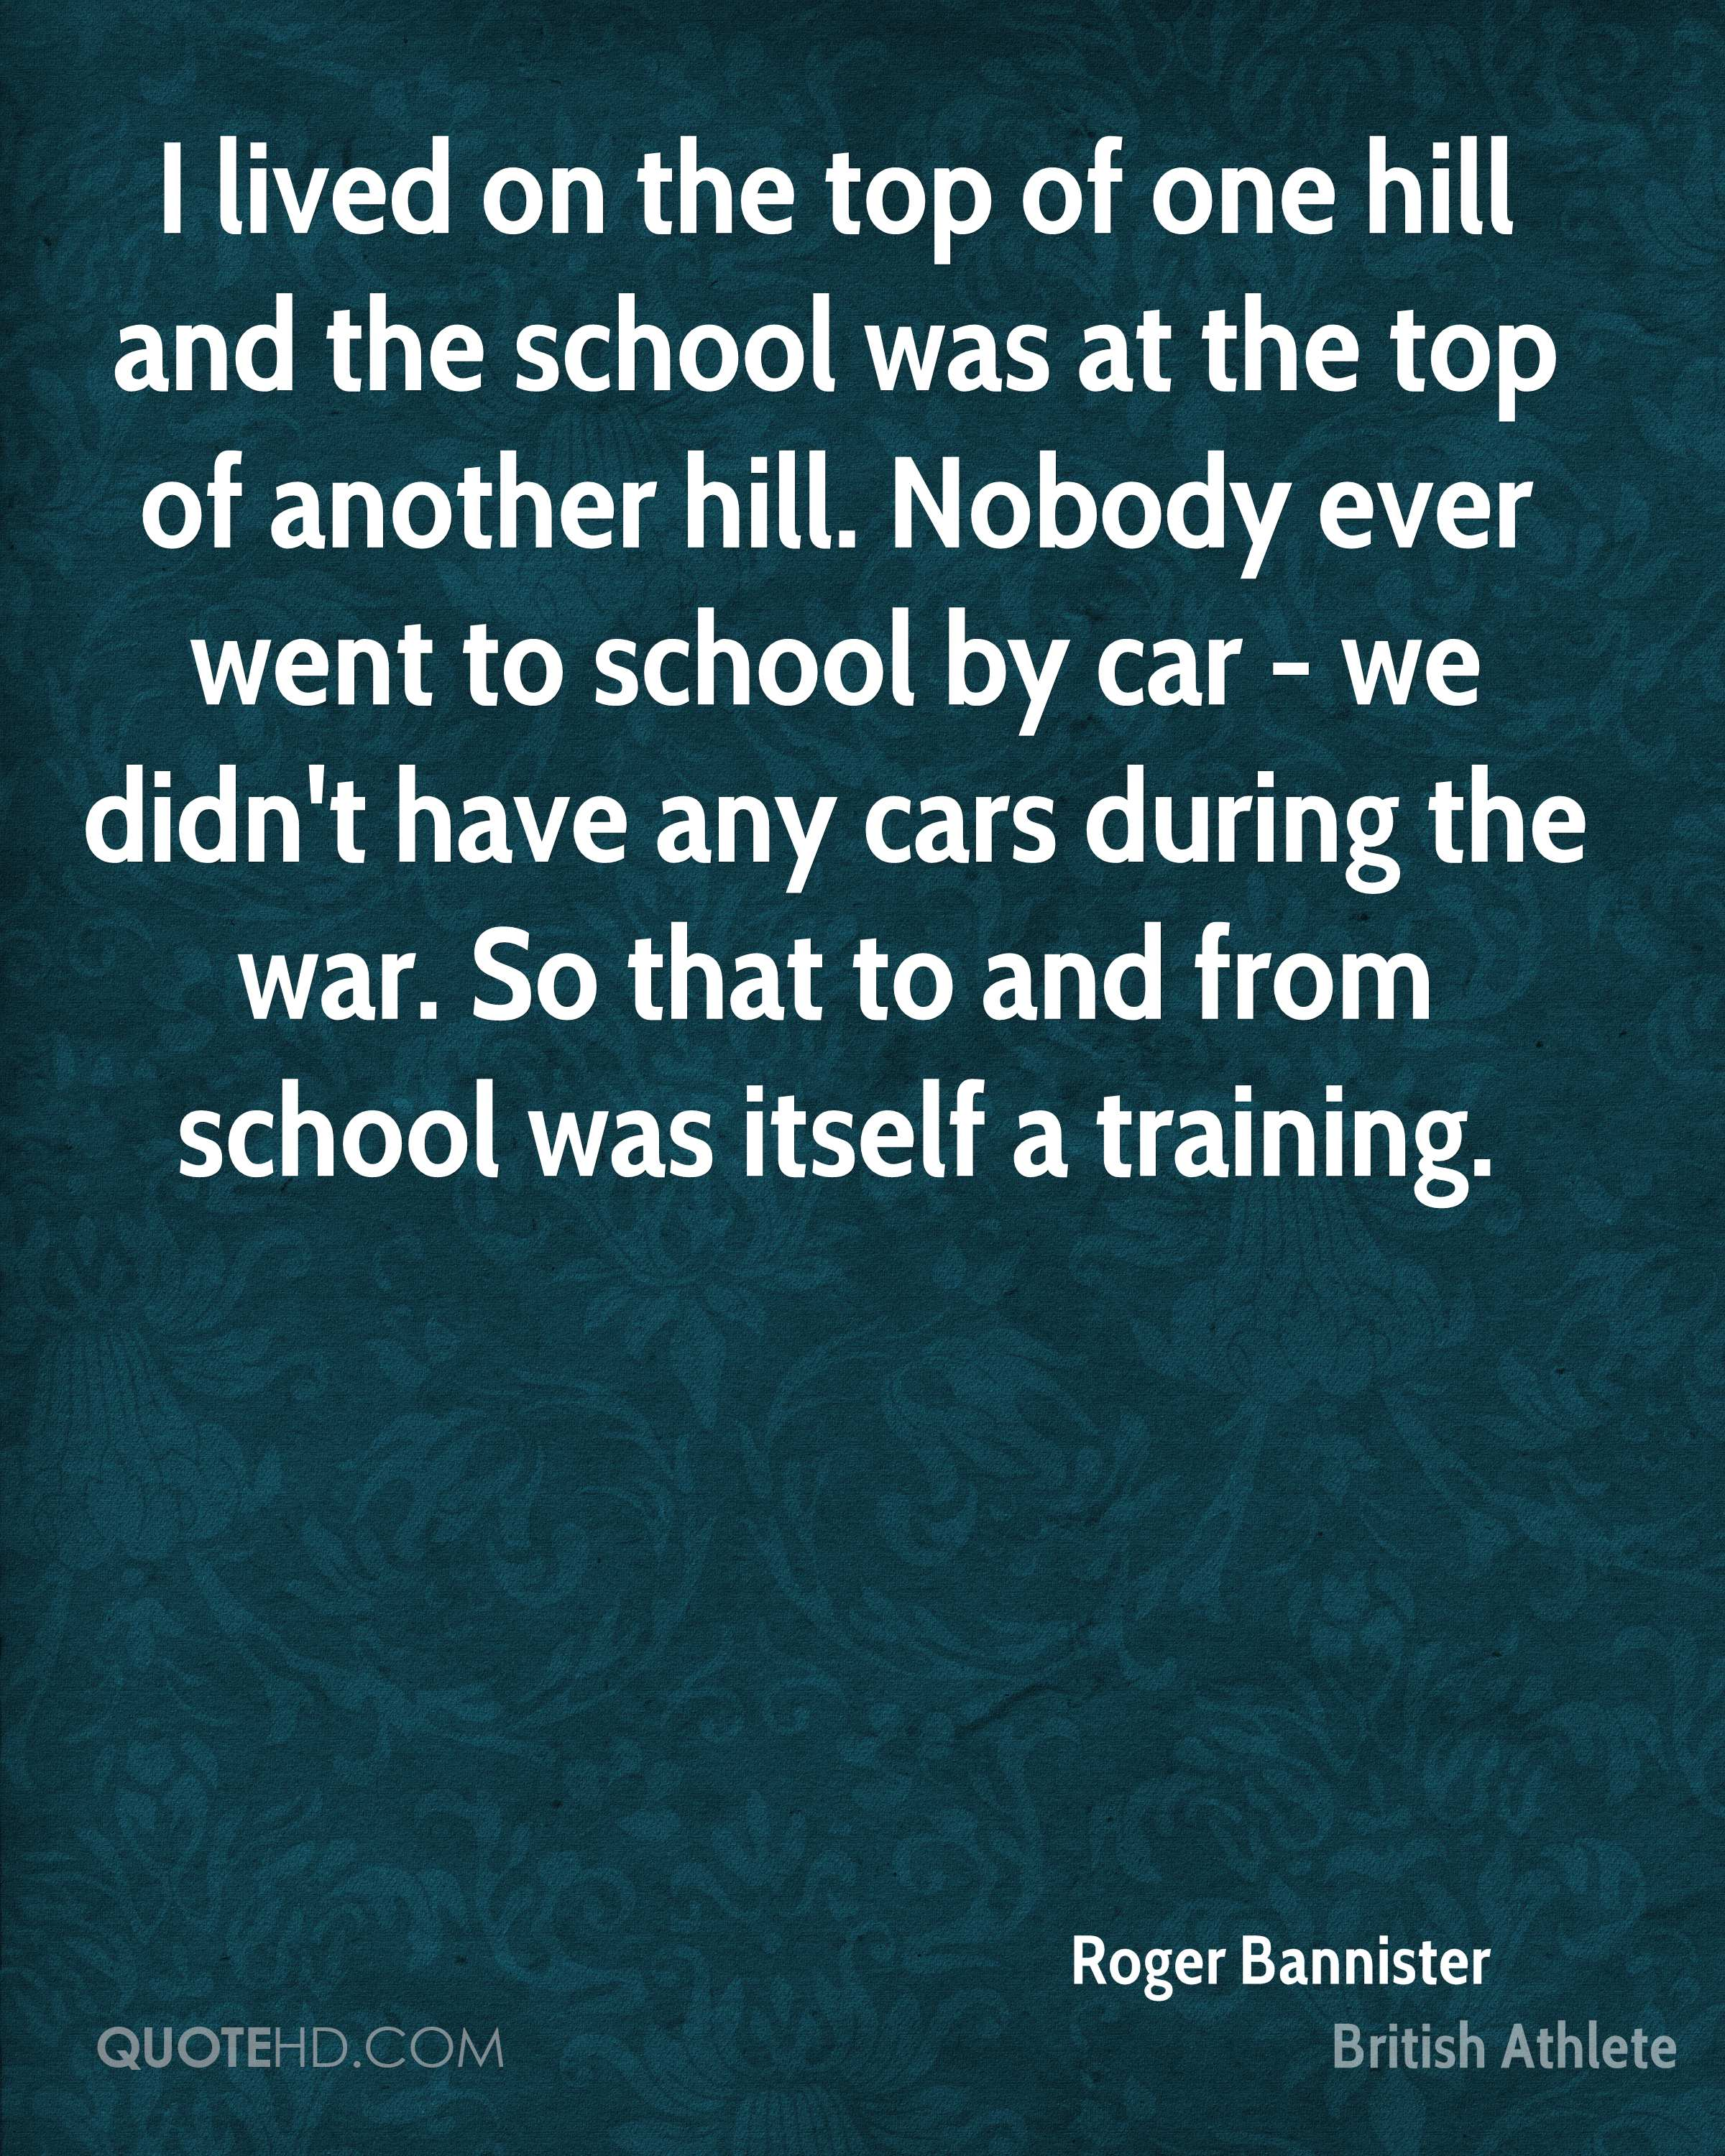 I lived on the top of one hill and the school was at the top of another hill. Nobody ever went to school by car - we didn't have any cars during the war. So that to and from school was itself a training.